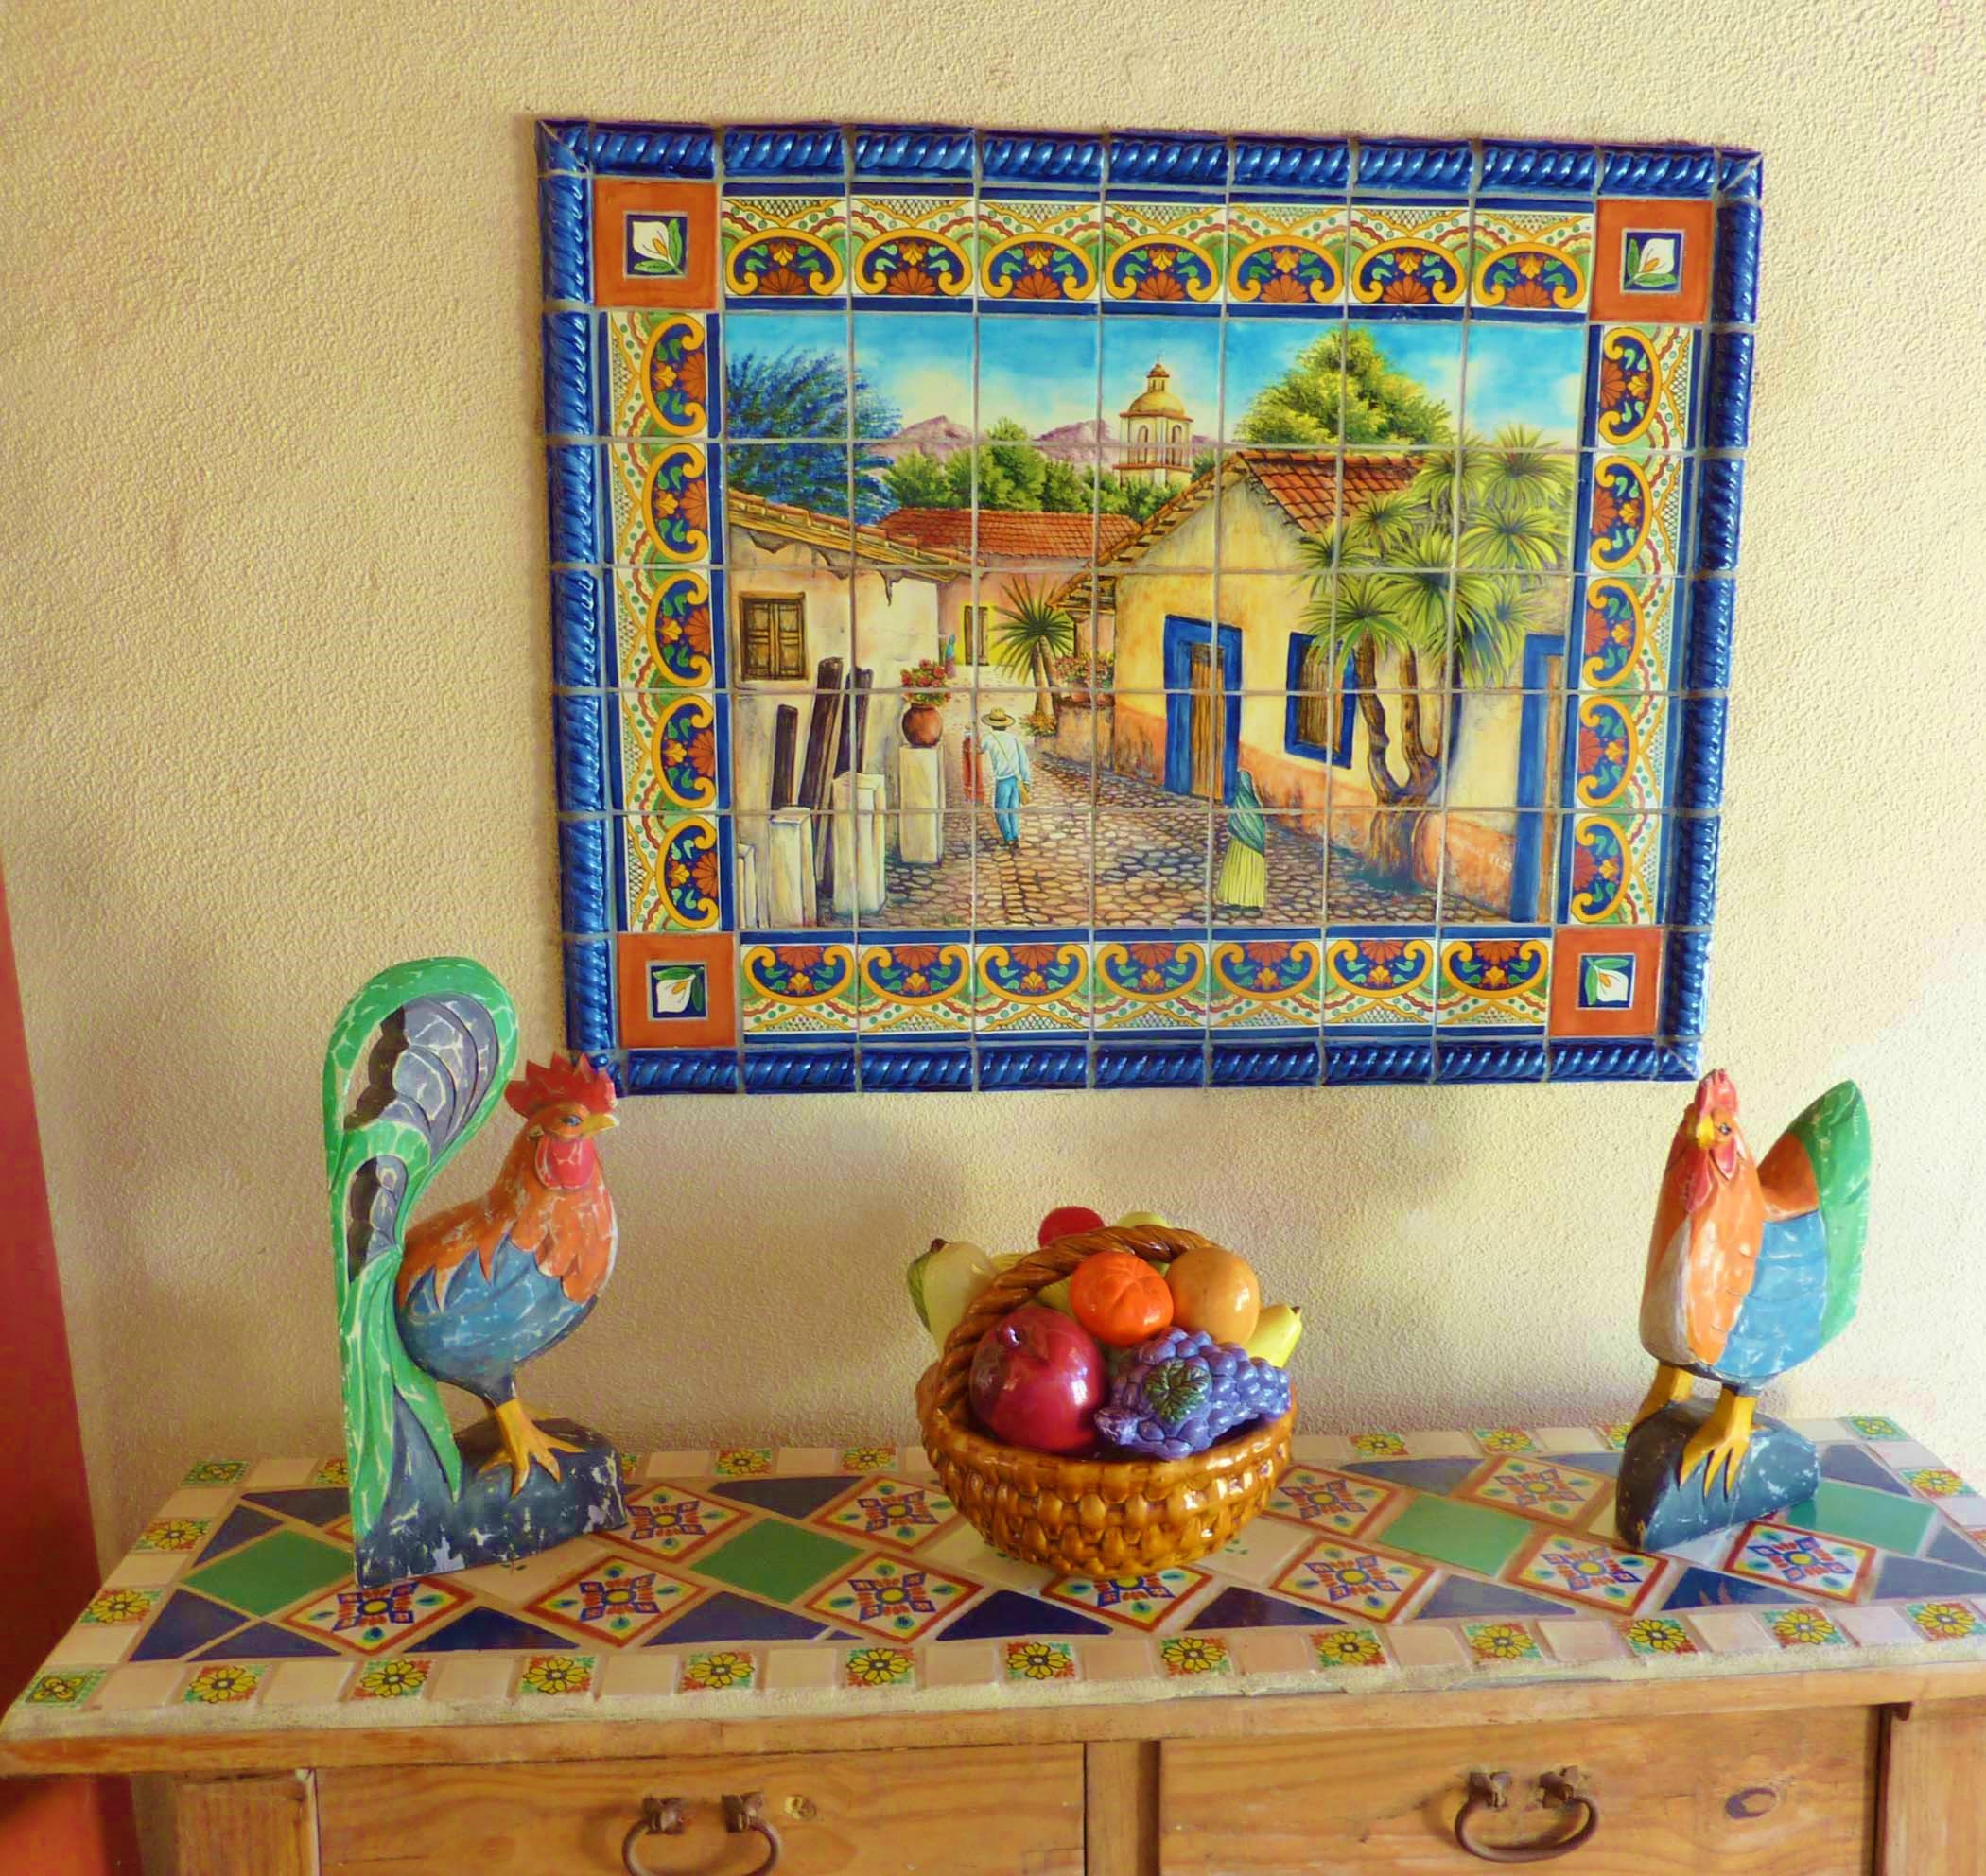 Mexican Tile Mural And Rustic Wooden Side Table.